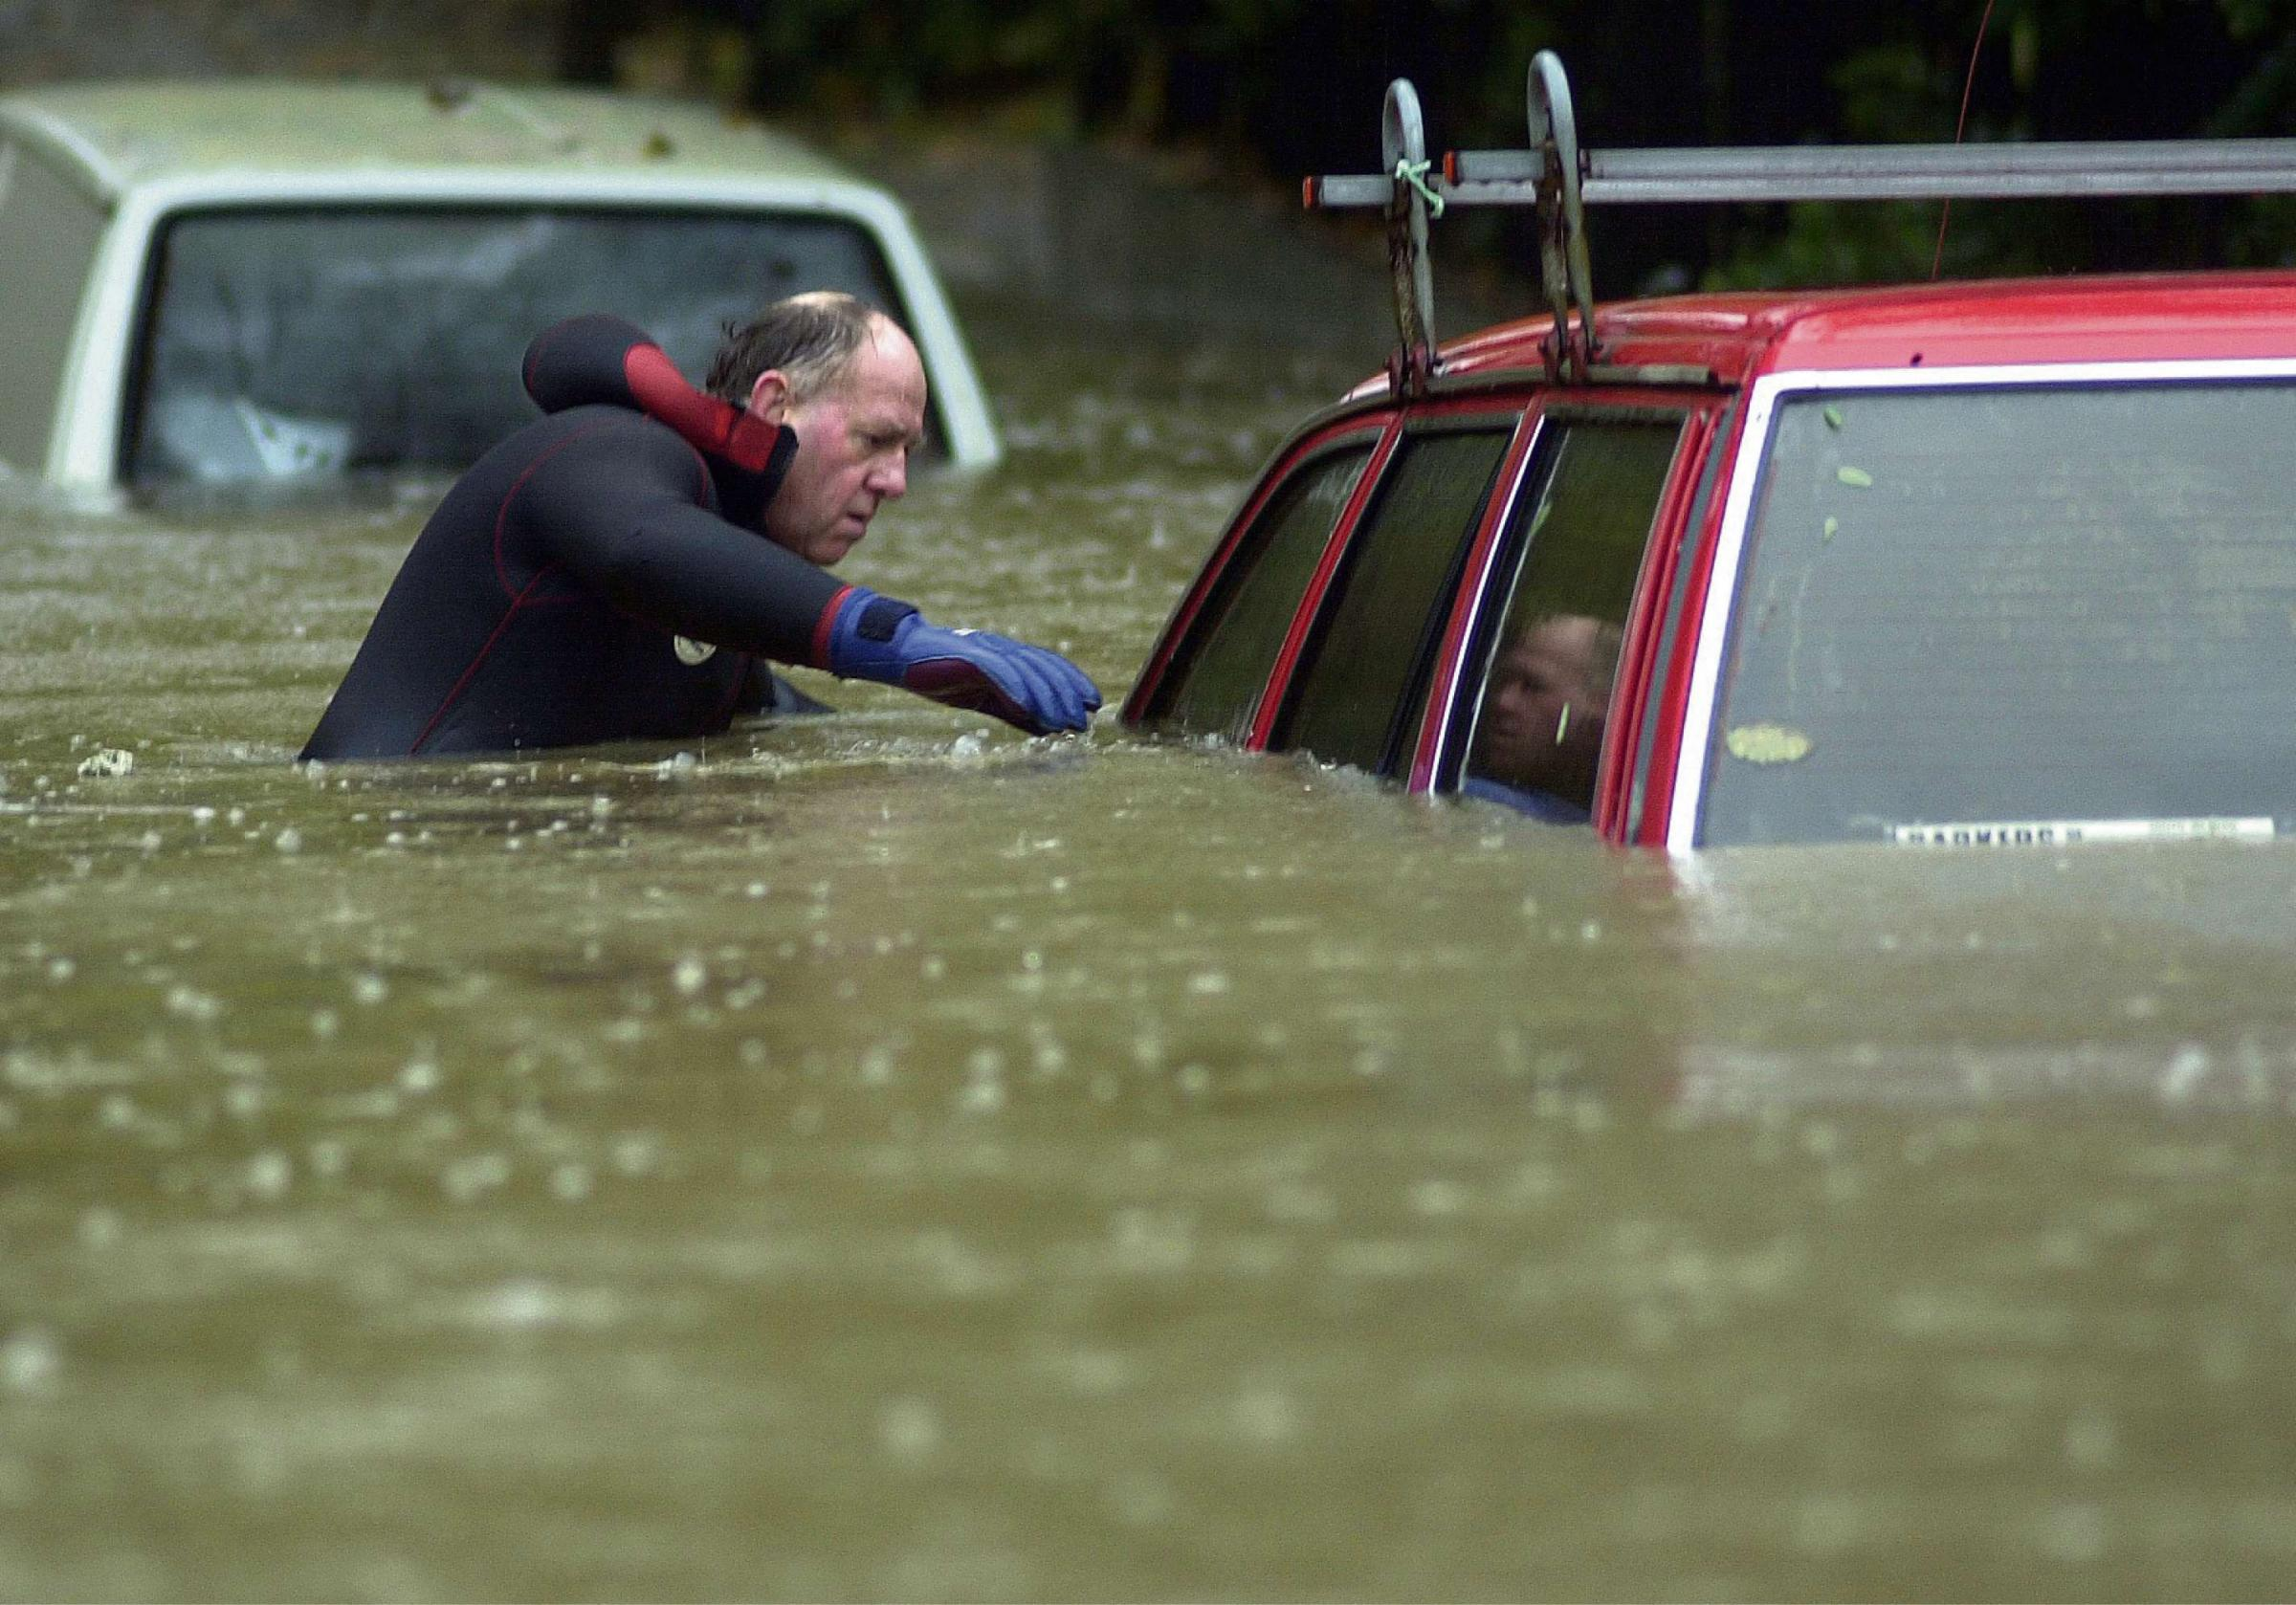 New funding should help ensure flooding is not so devastating